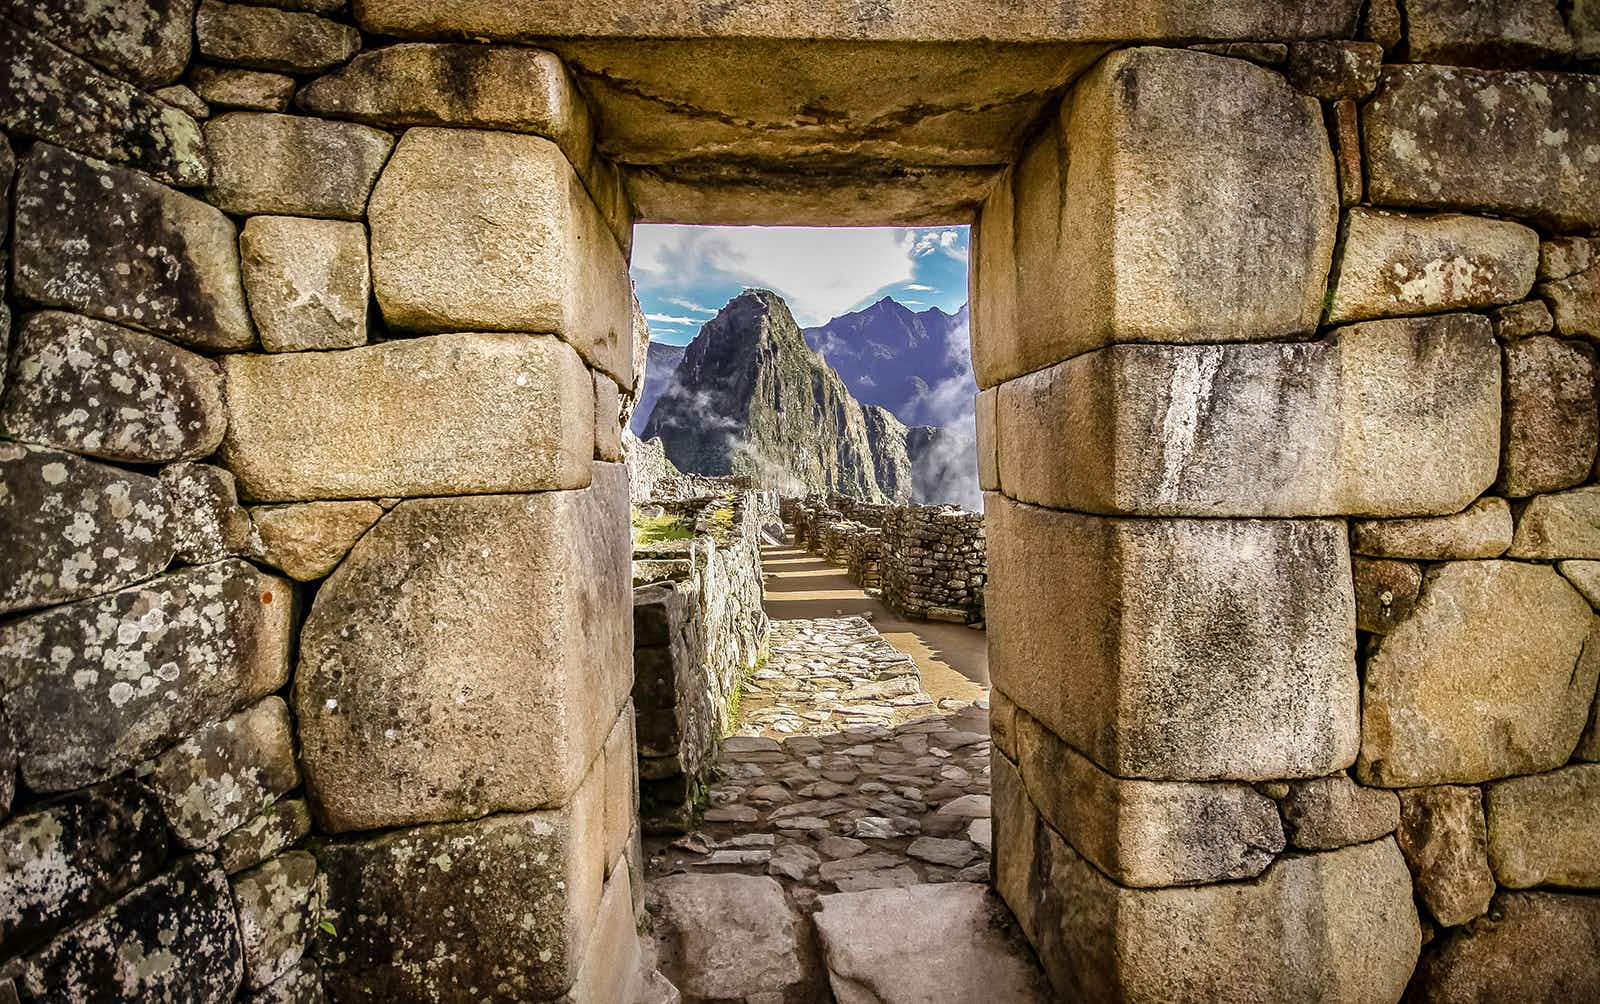 Machu Picchu is more accessible than you may think © Uwe Bergitz / shutterstock